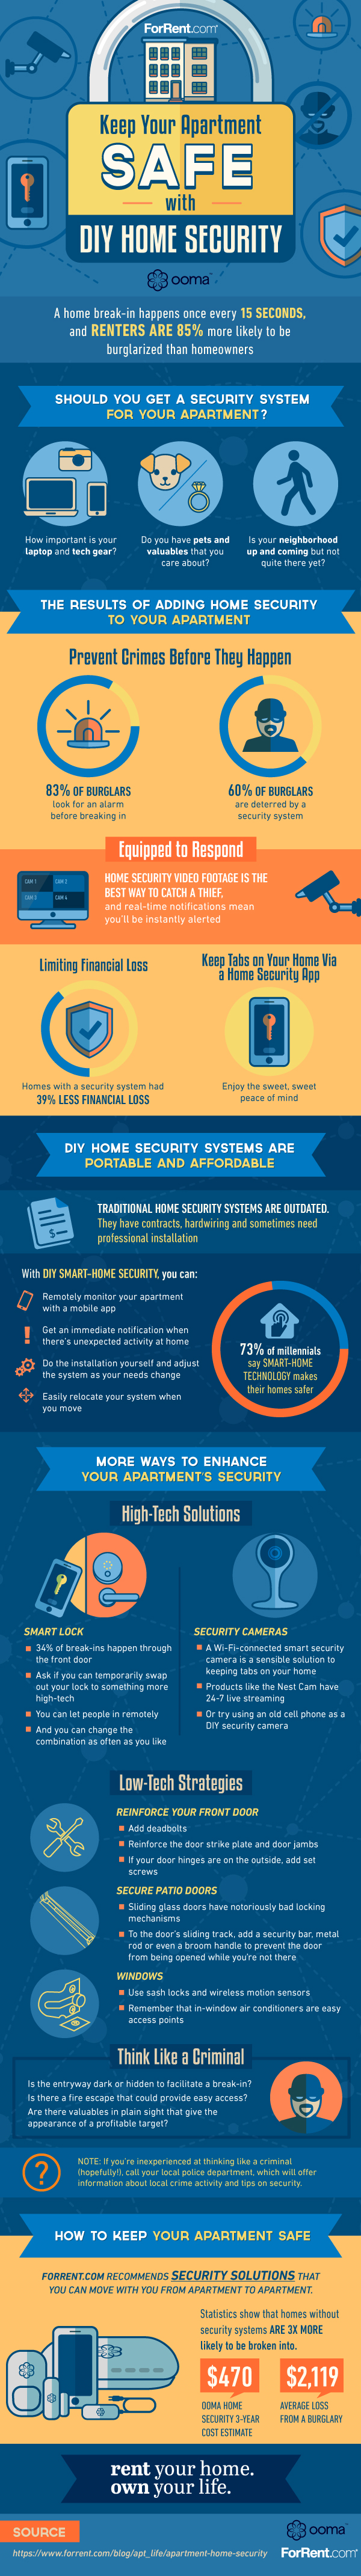 How to Make Your Home Safe with DIY Home Security Systems - Infographic